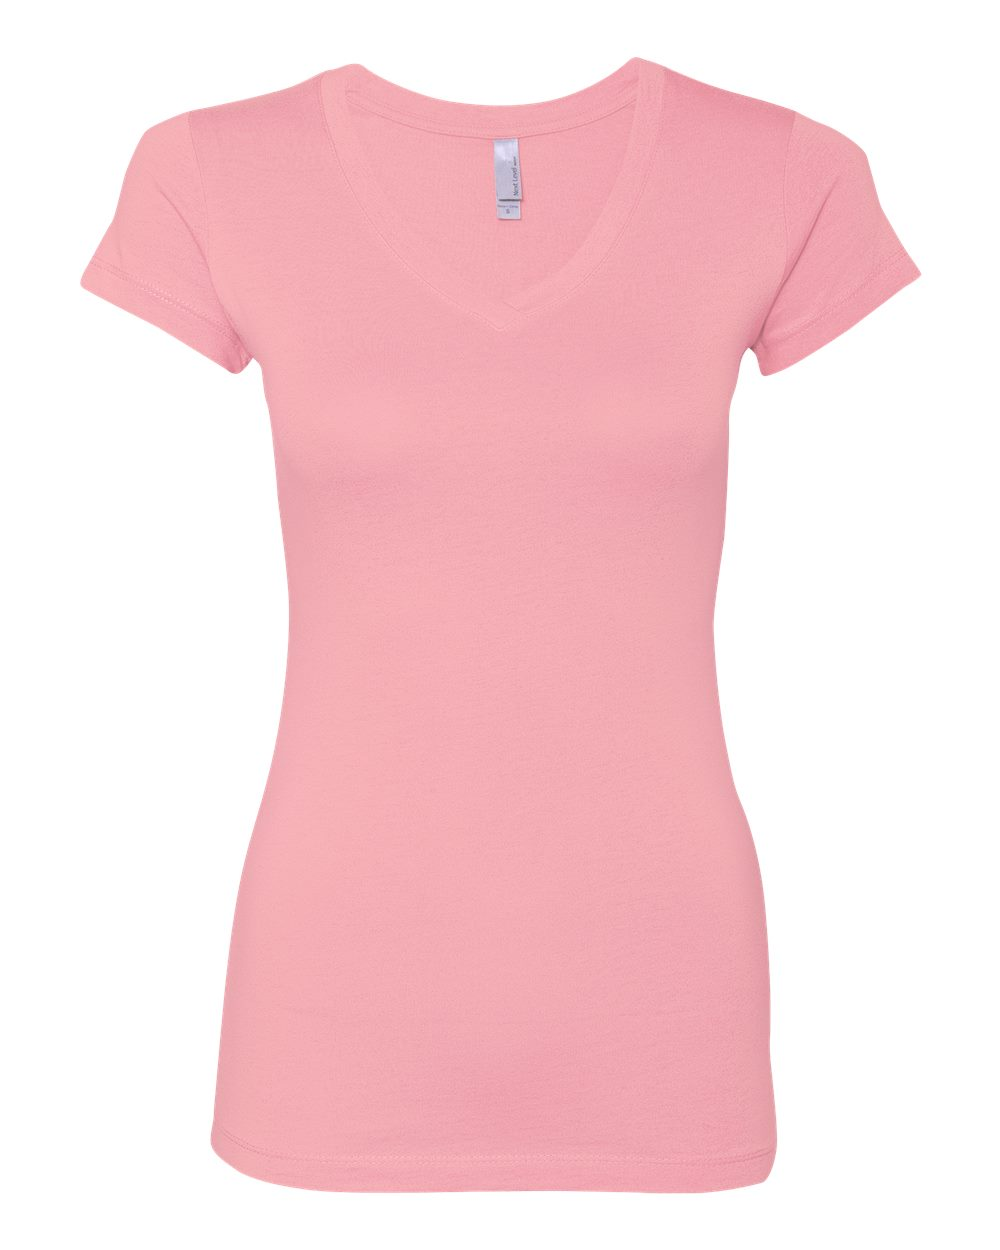 Next_Level_3400L_Light_Pink_Front_High.jpg